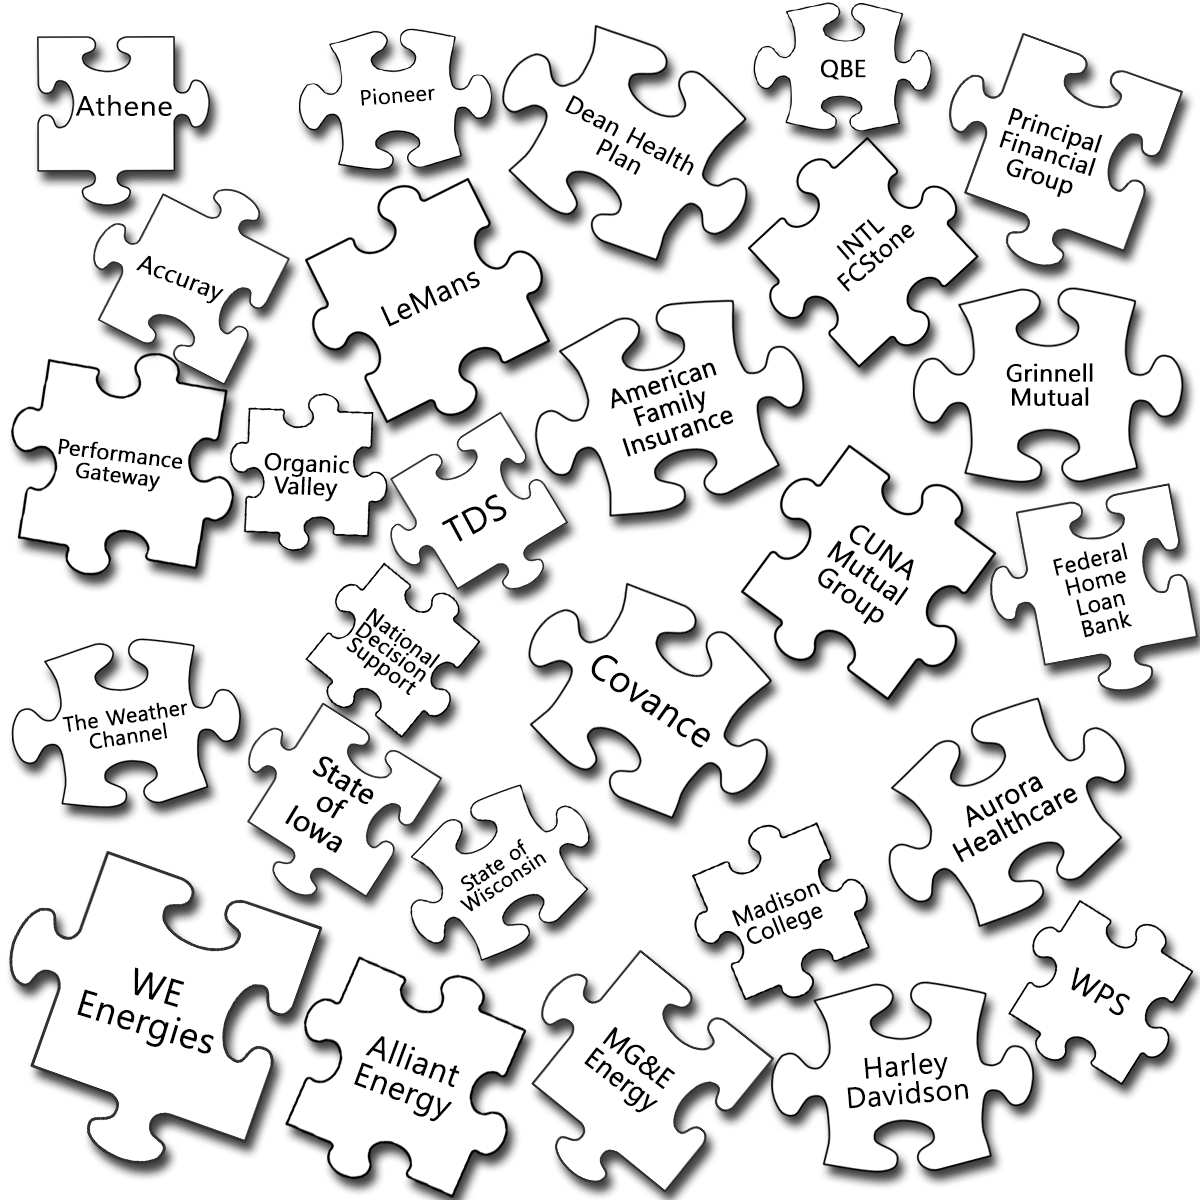 Puzzle Pieces with Client Names 2017